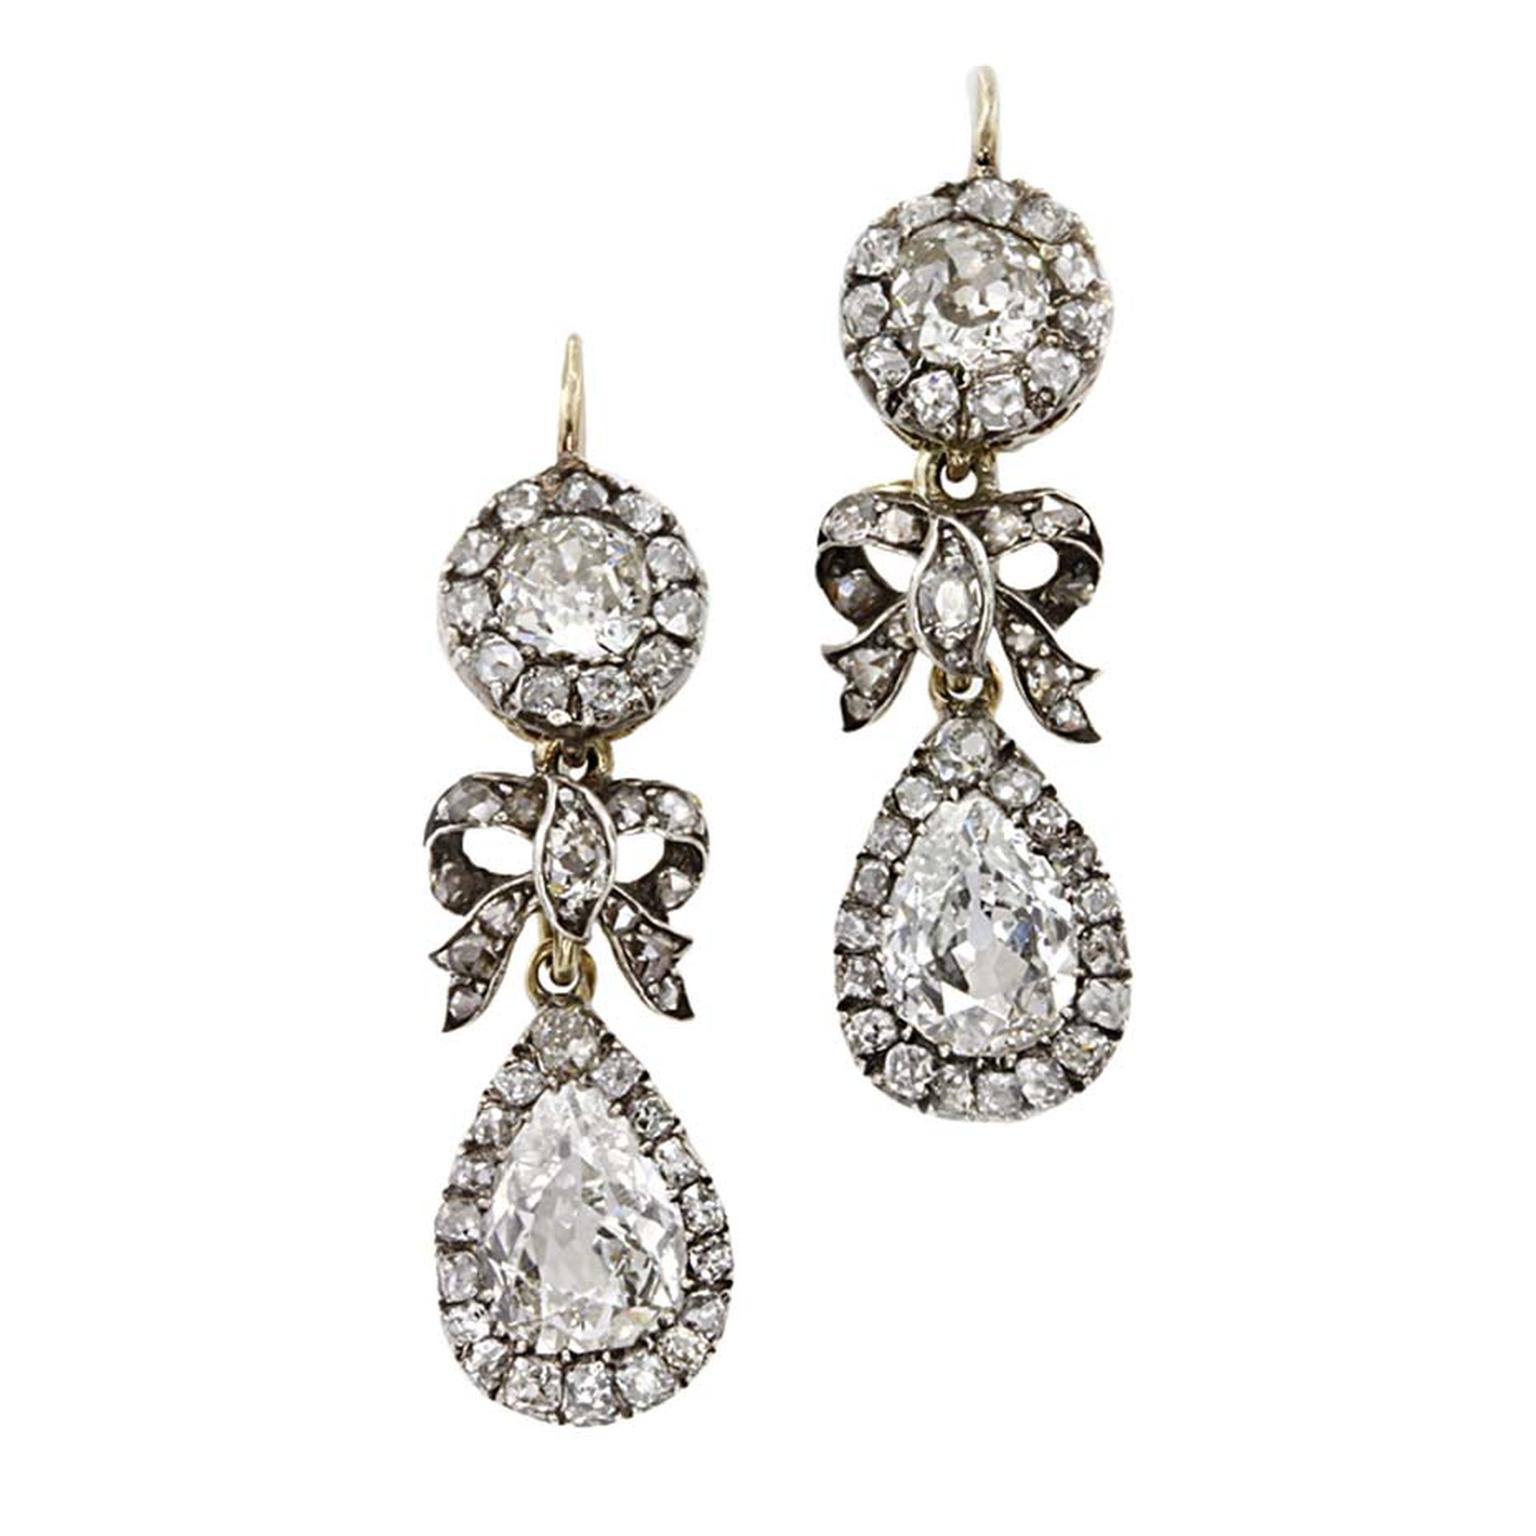 Victorian diamond drop earrings ($64,500), available at 1stdibs.com. Image by: ScullyFoto.com